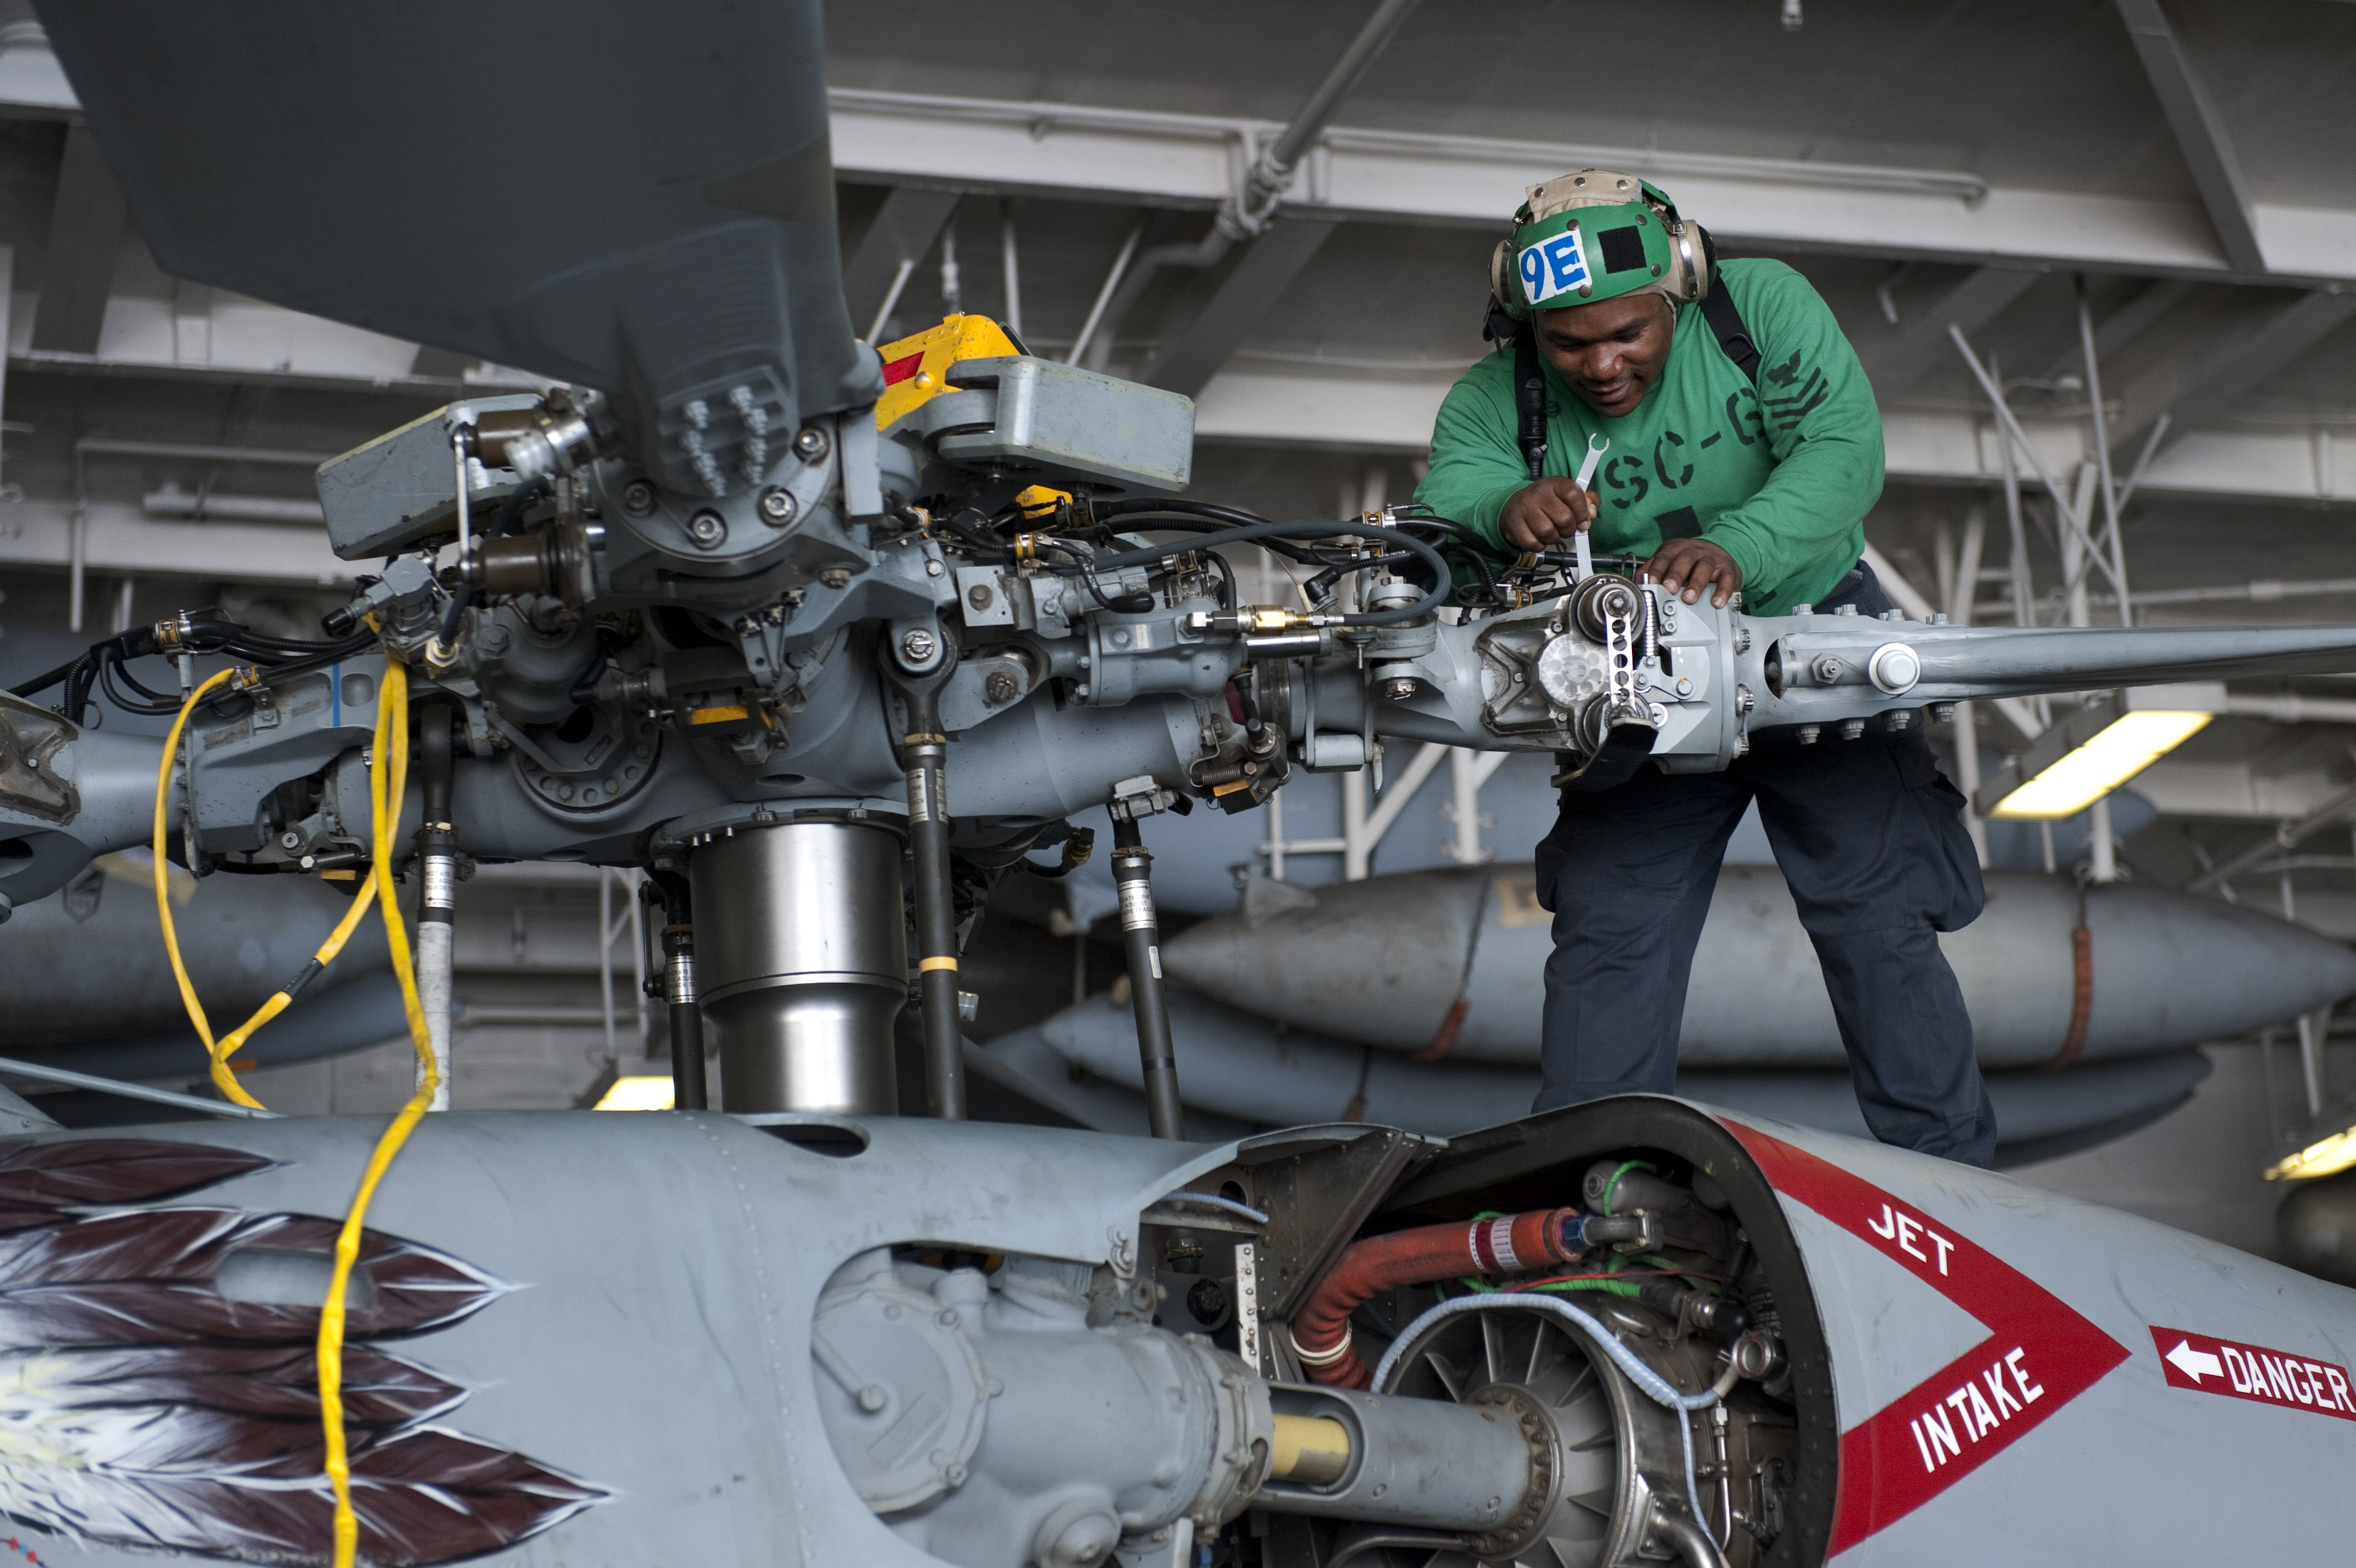 helicopter aircraft carrier with File U S  Navy Aviation Electrician's Mate 1st Class Eric Jones Performs Maintenance On An Mh 60s Seahawk Helicopter Assigned To Helicopter Sea  Bat Squadron  Hsc  6 In The Hangar Bay Of The Aircraft Carrier 130424 N Ks651 061 on UNIT BERBER CAVALRY besides 154kittyhawk furthermore File USS Carl Vinson  CVN 70  off Port Au Prince 17 Jan 2010 as well Holycityhelicopters further Stealth Ships.